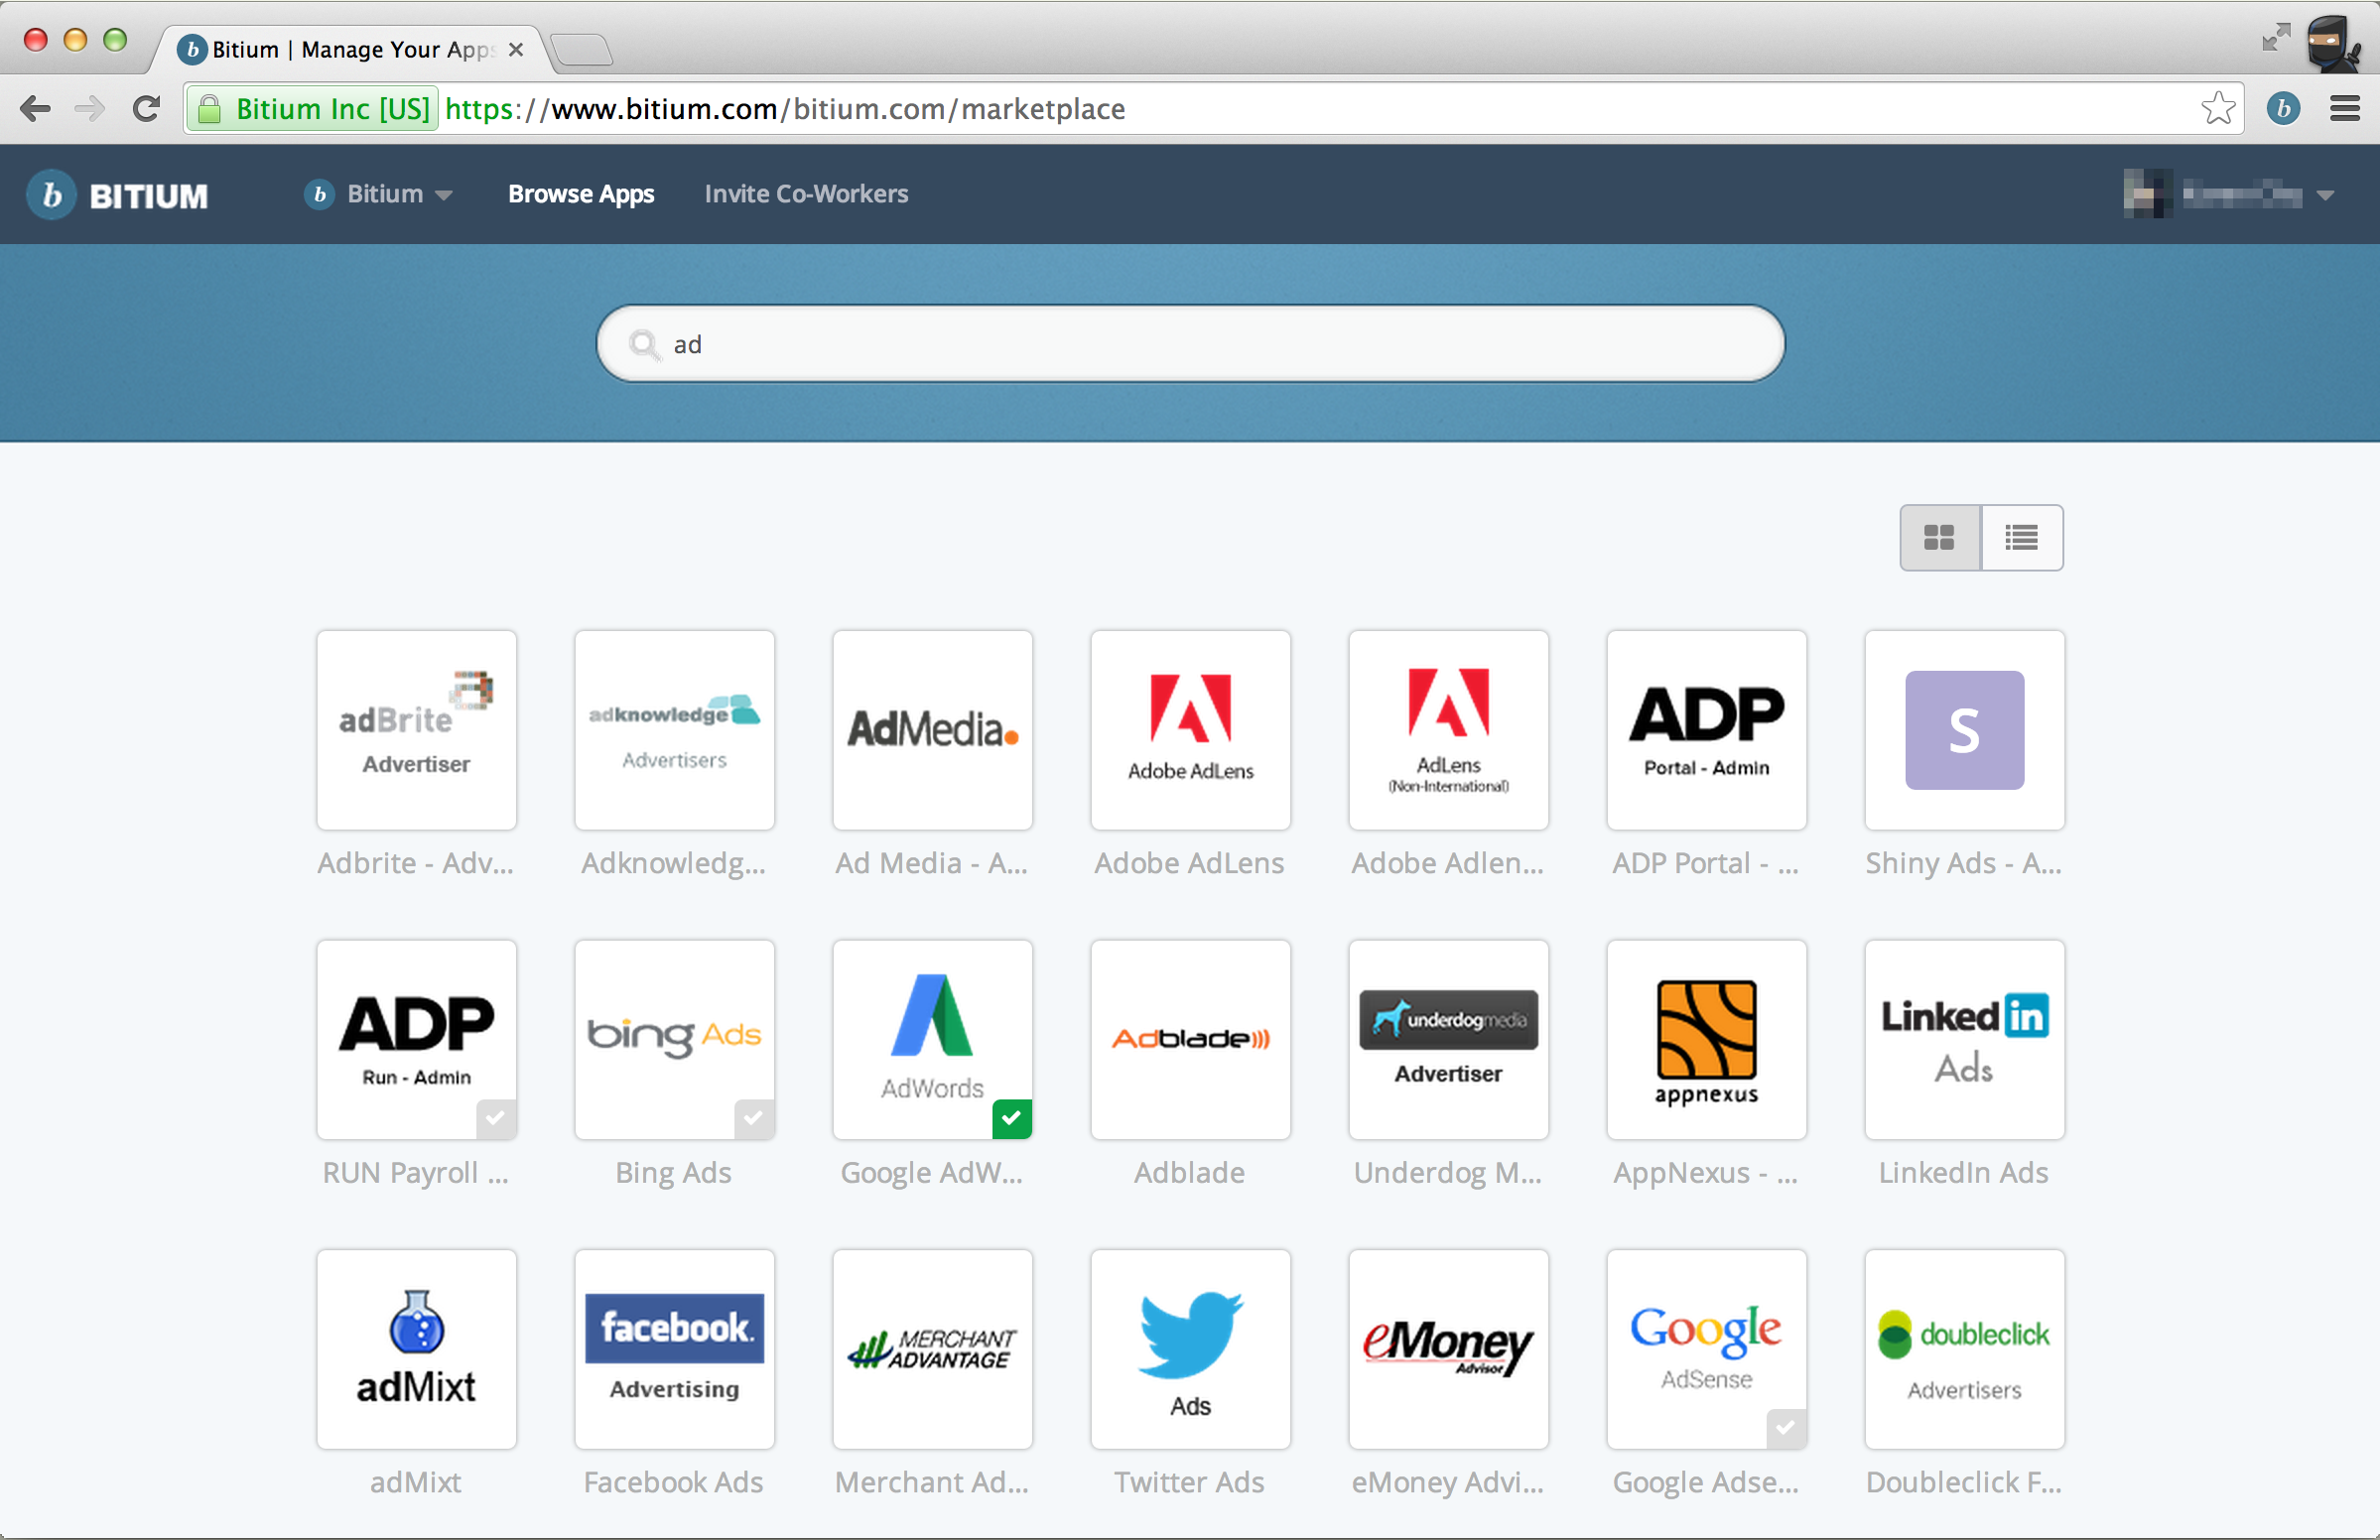 Browse for integrated apps in the Bitium Marketplace